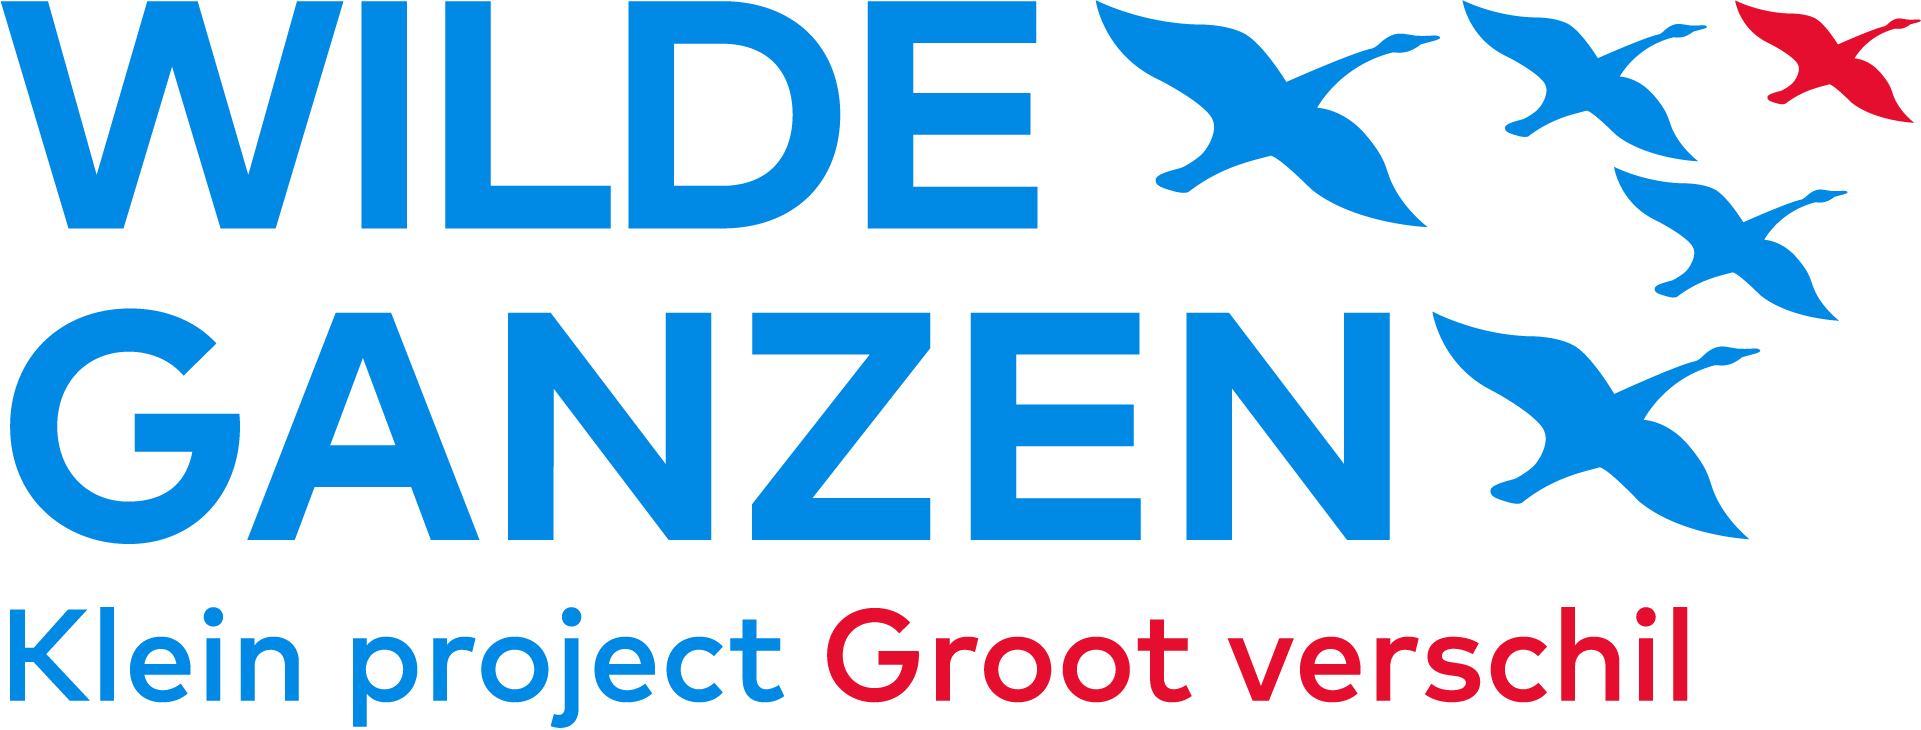 WILDE GANZEN LOGO 2019 Compact pay off